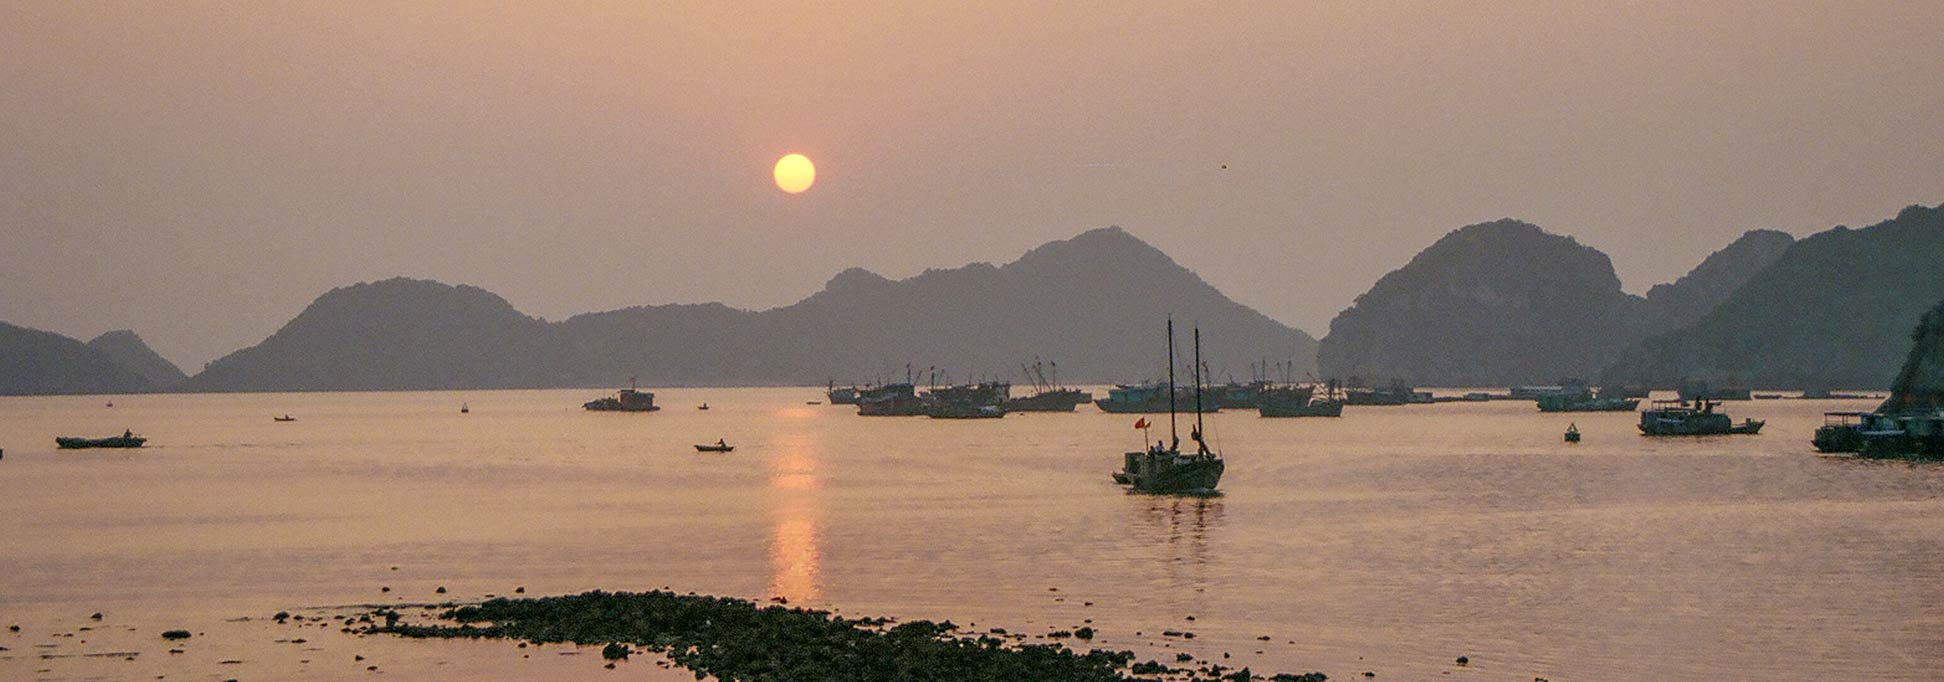 Sunset at Halong Bay from Cat Ba Island in Vietnam